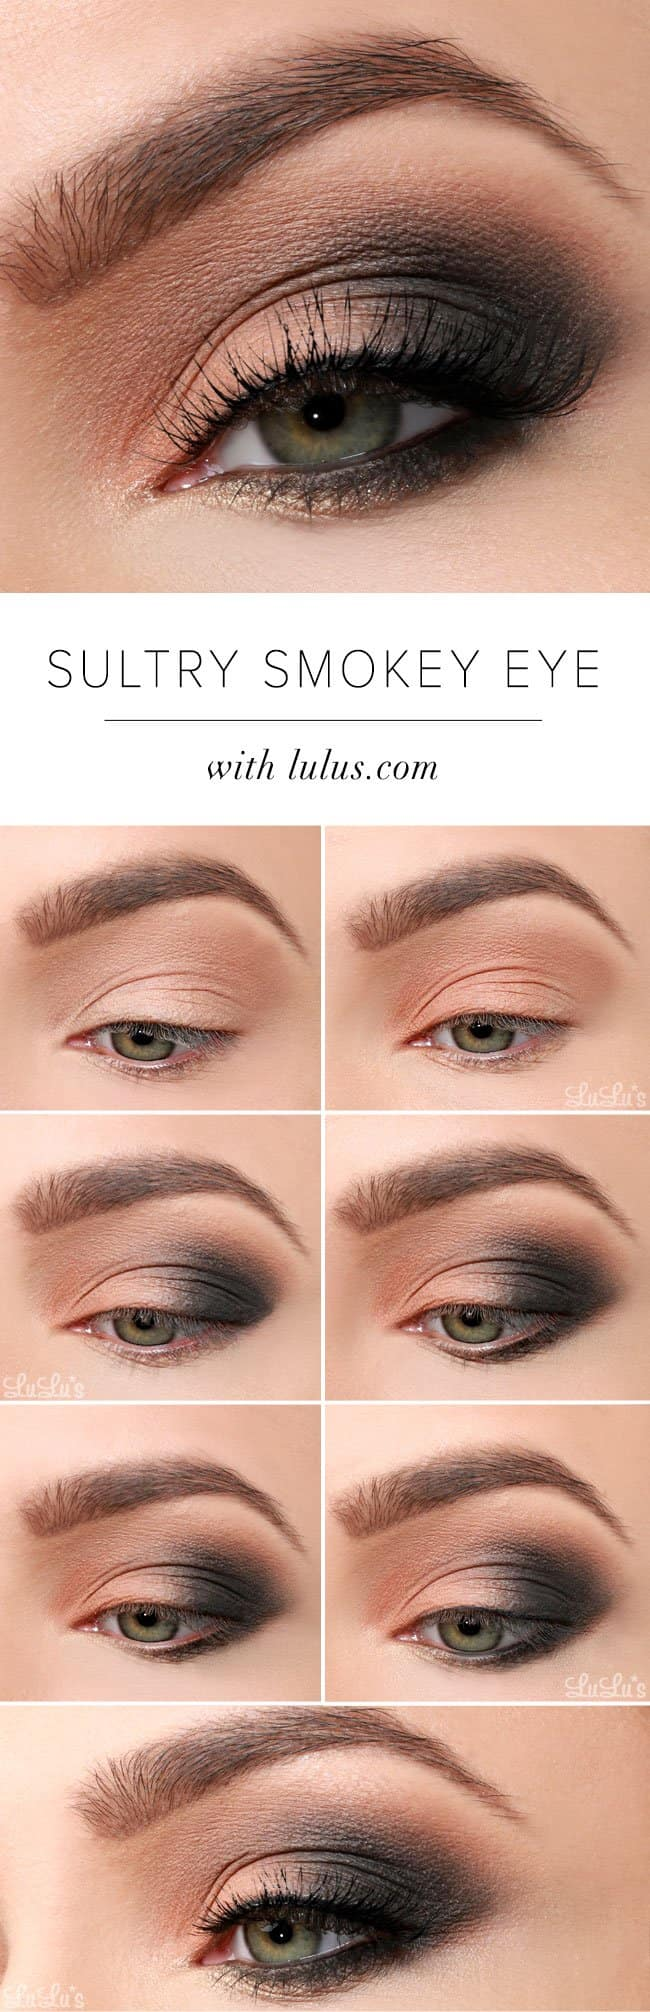 15 smokey eye tutorials - step by step guide to perfect hollywood makeup